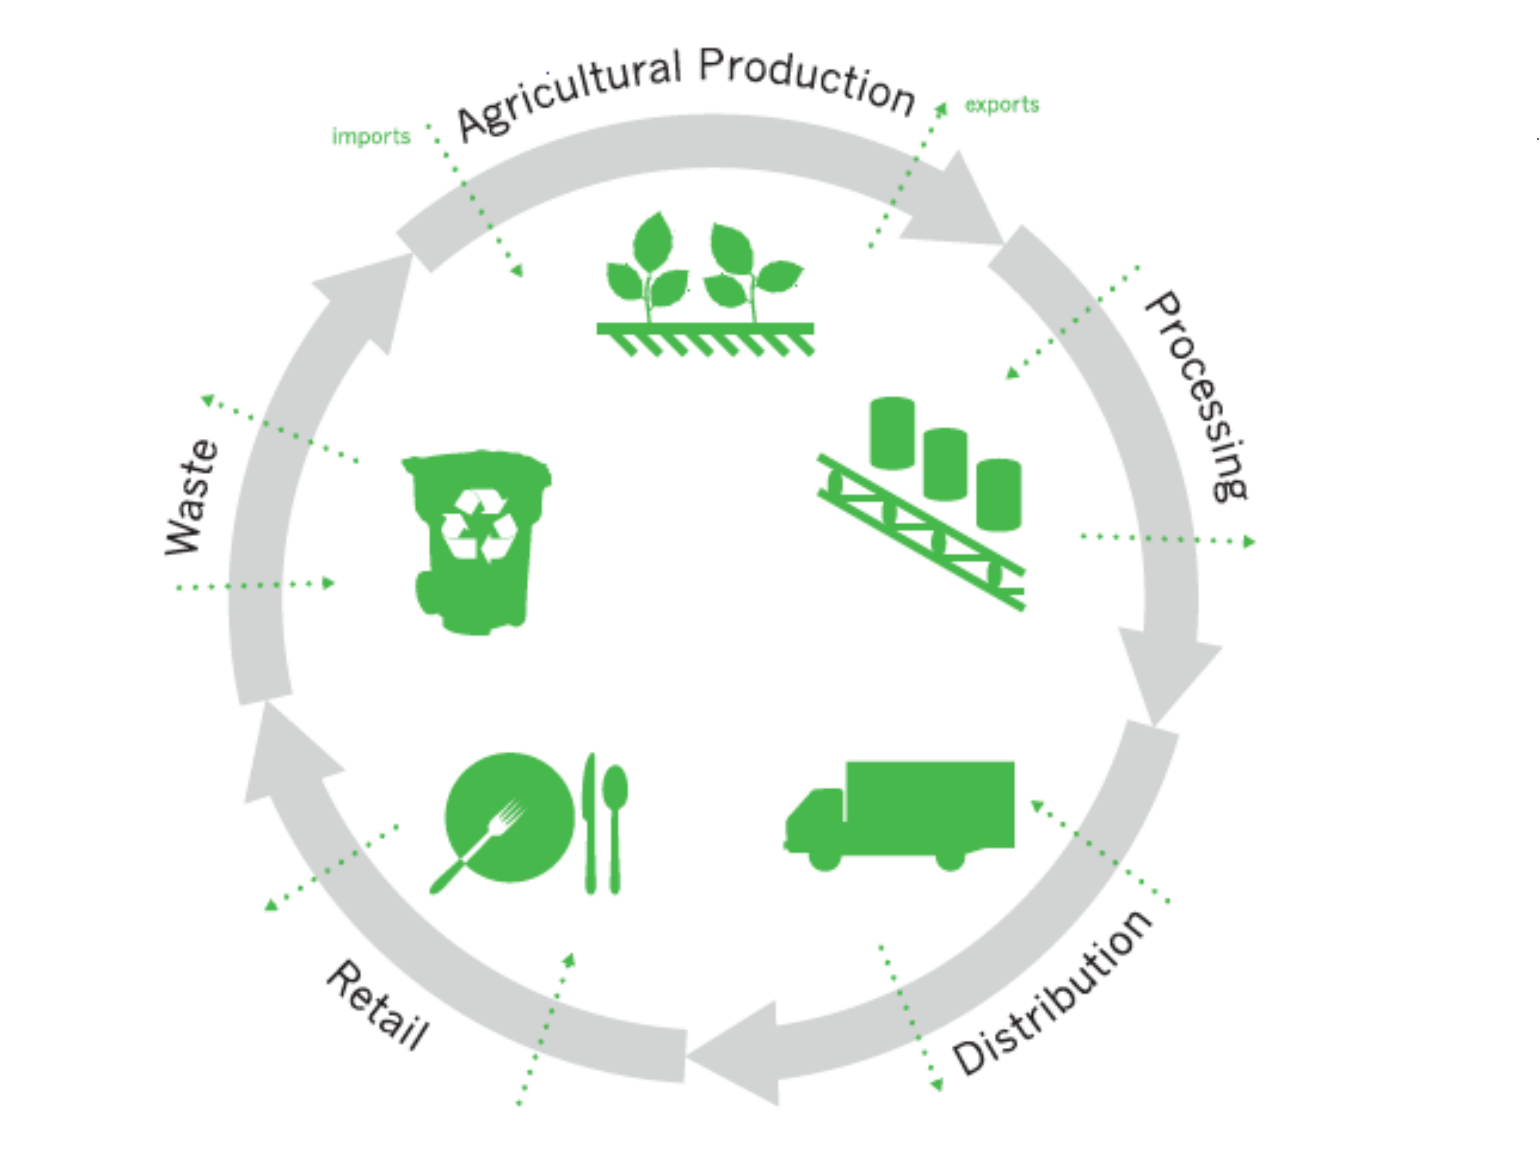 Figure 1: A circular representation of processes within the food system.